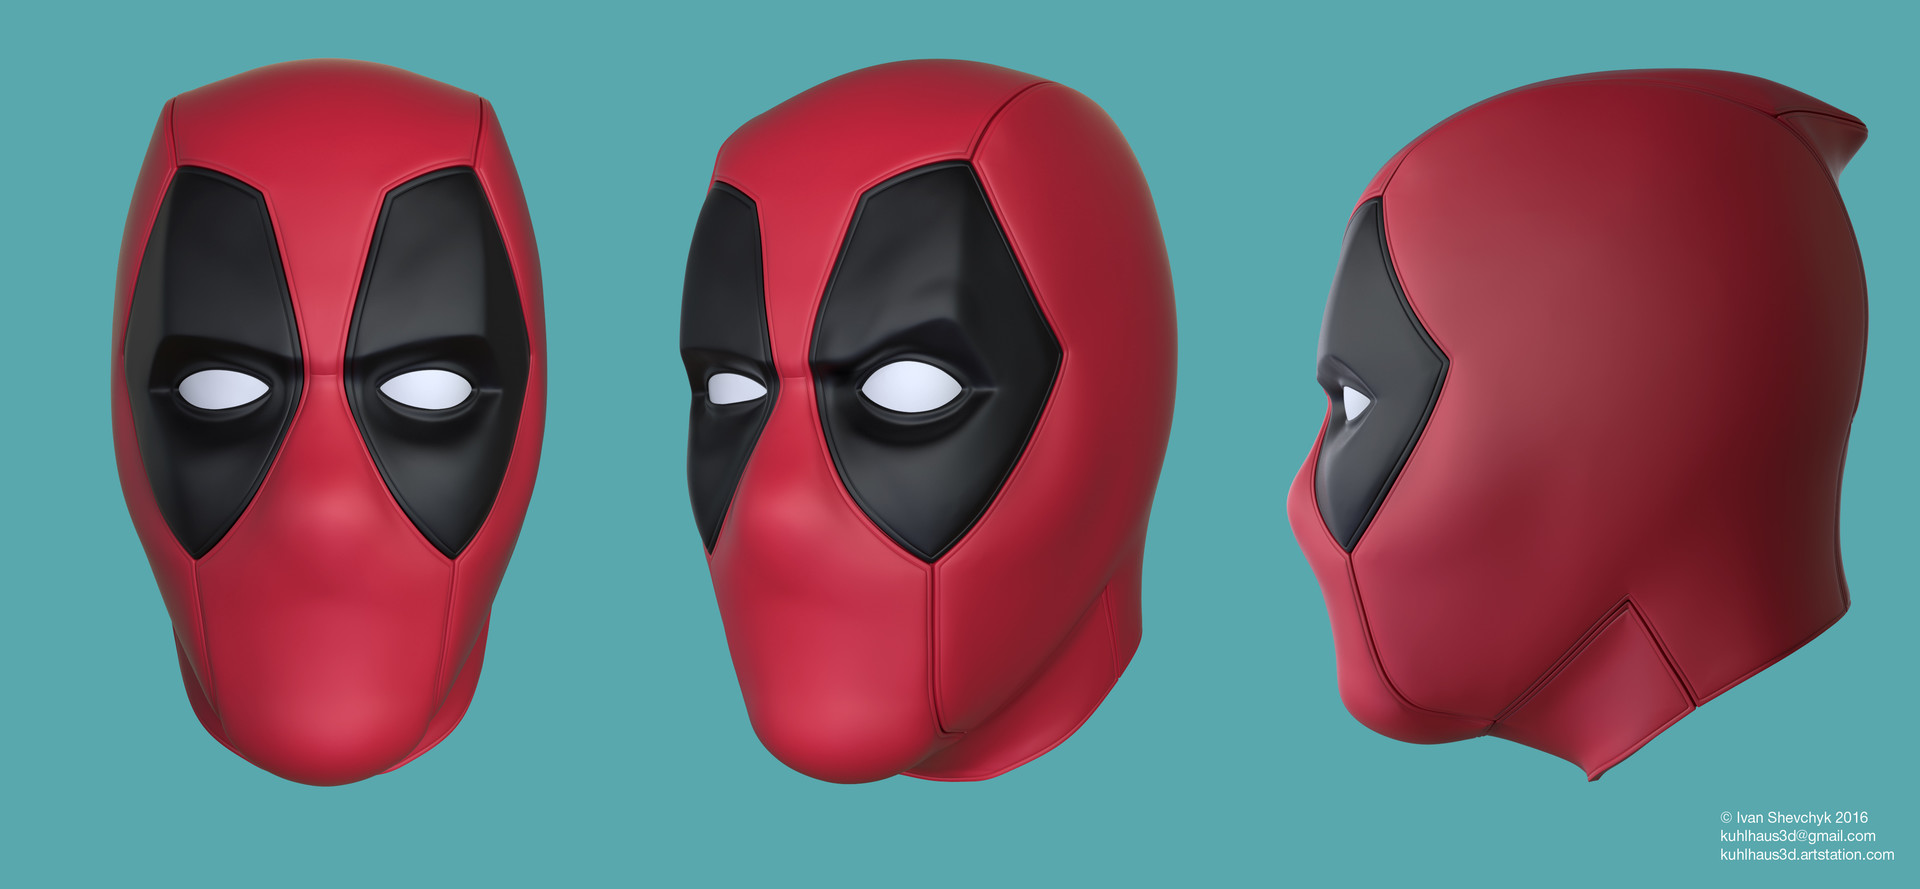 Ivan Shevchyk - Deadpool mask for 3d printing